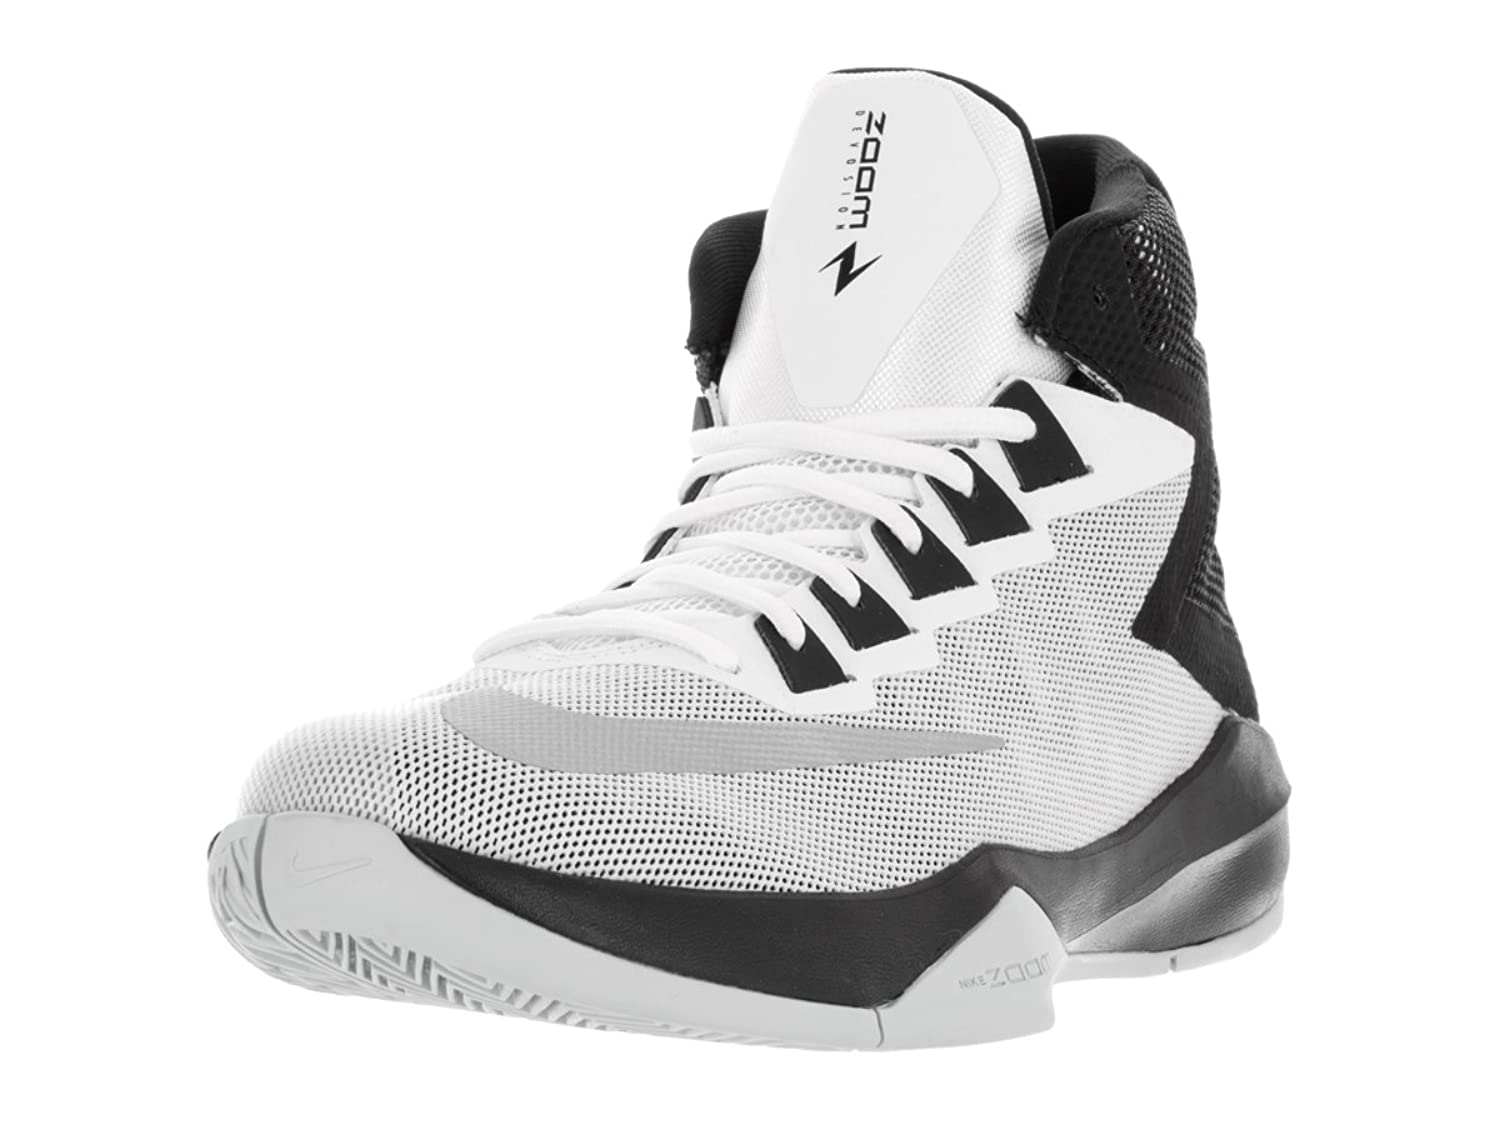 Nike Men's 844592-100 Basketball Shoes, 9.5 UK: Amazon.co.uk: Shoes & Bags